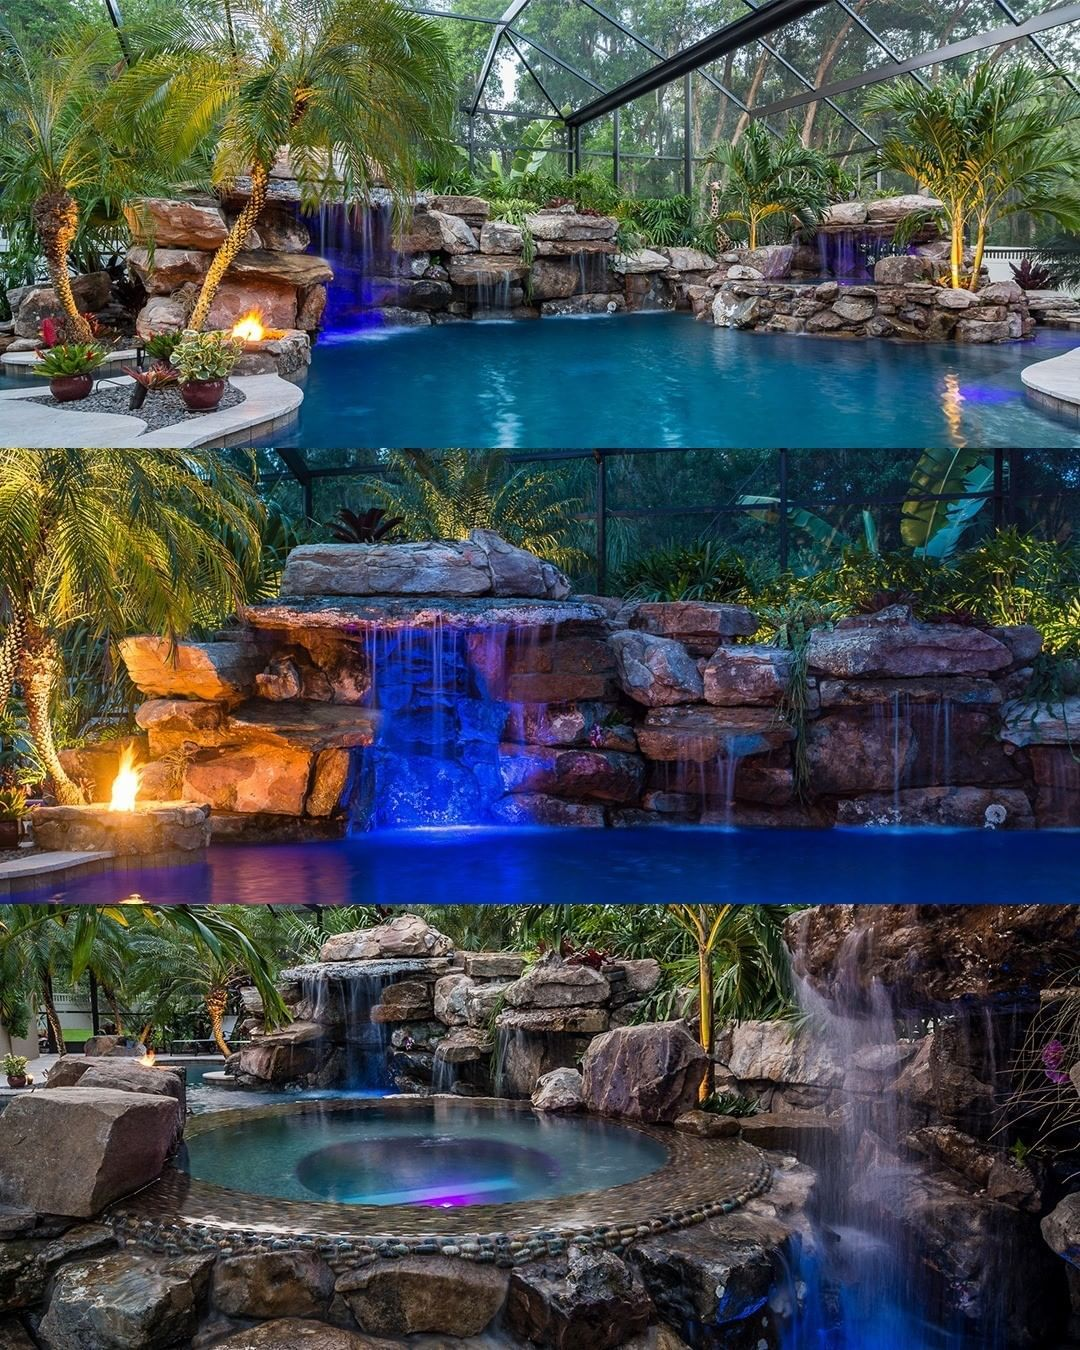 Lucas Lagoons On Instagram We Take Immense Pride In Raising The Bar For Exceptional Luxury Pools We C Dream Backyard Pool Luxury Pools Backyard Pool Designs